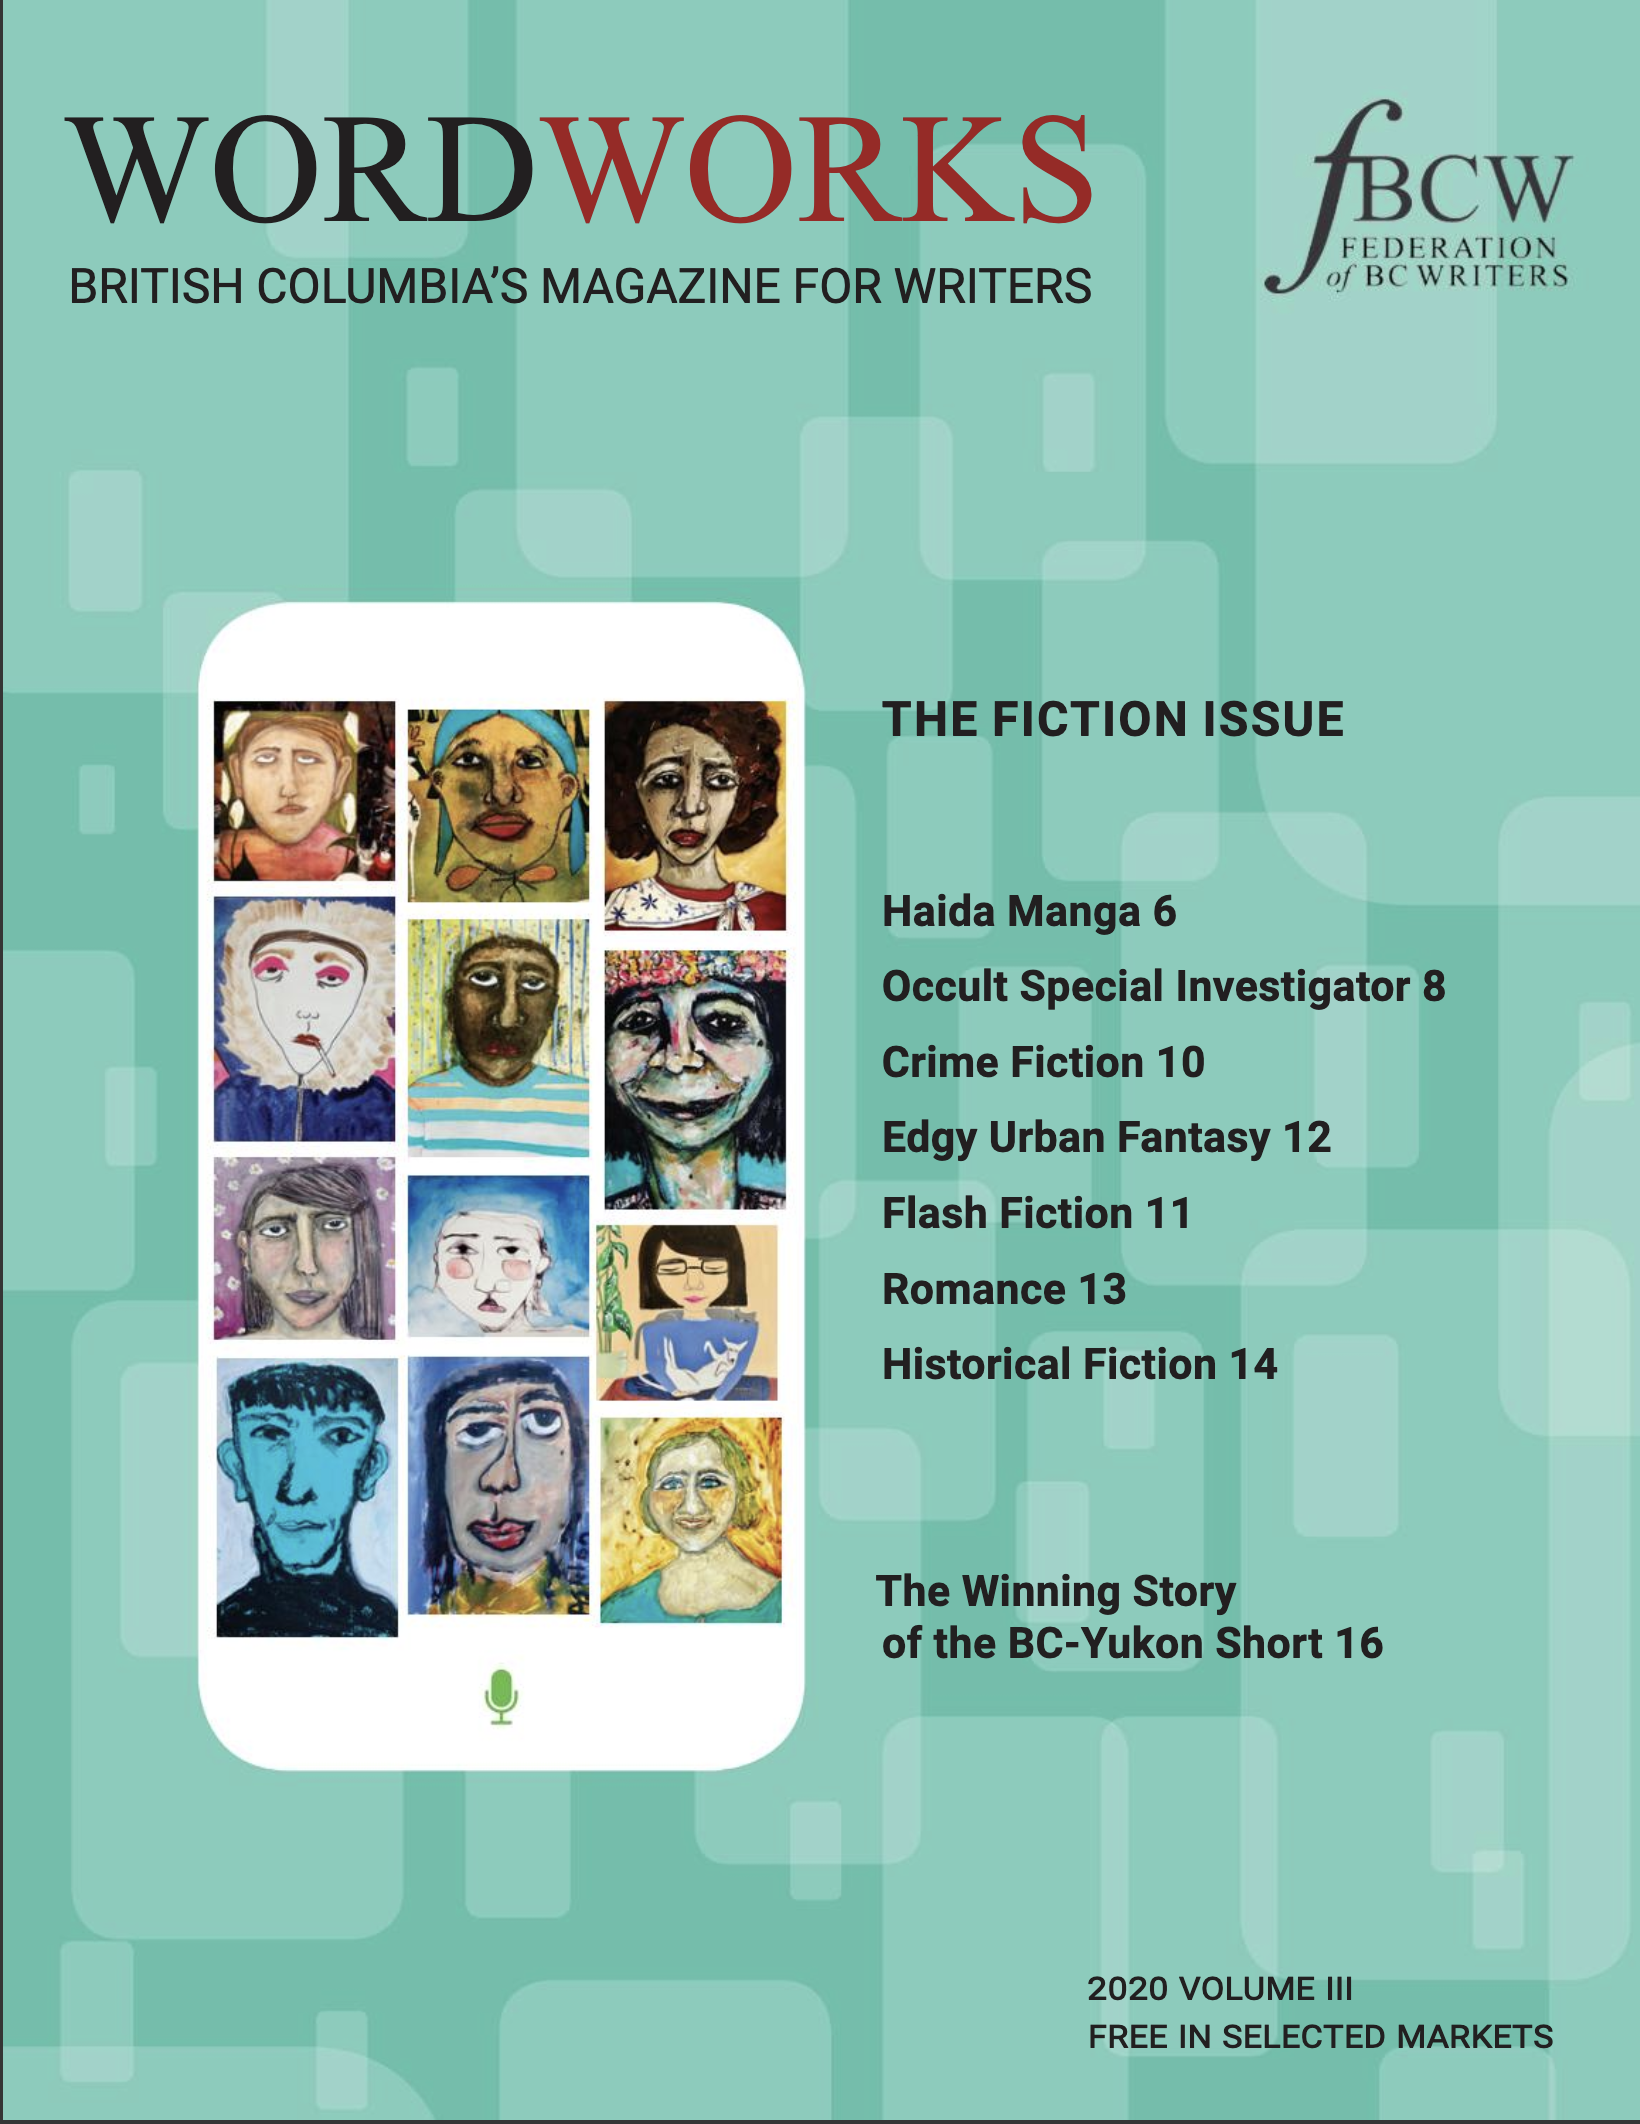 2020 Vol III The Fiction Issue cover